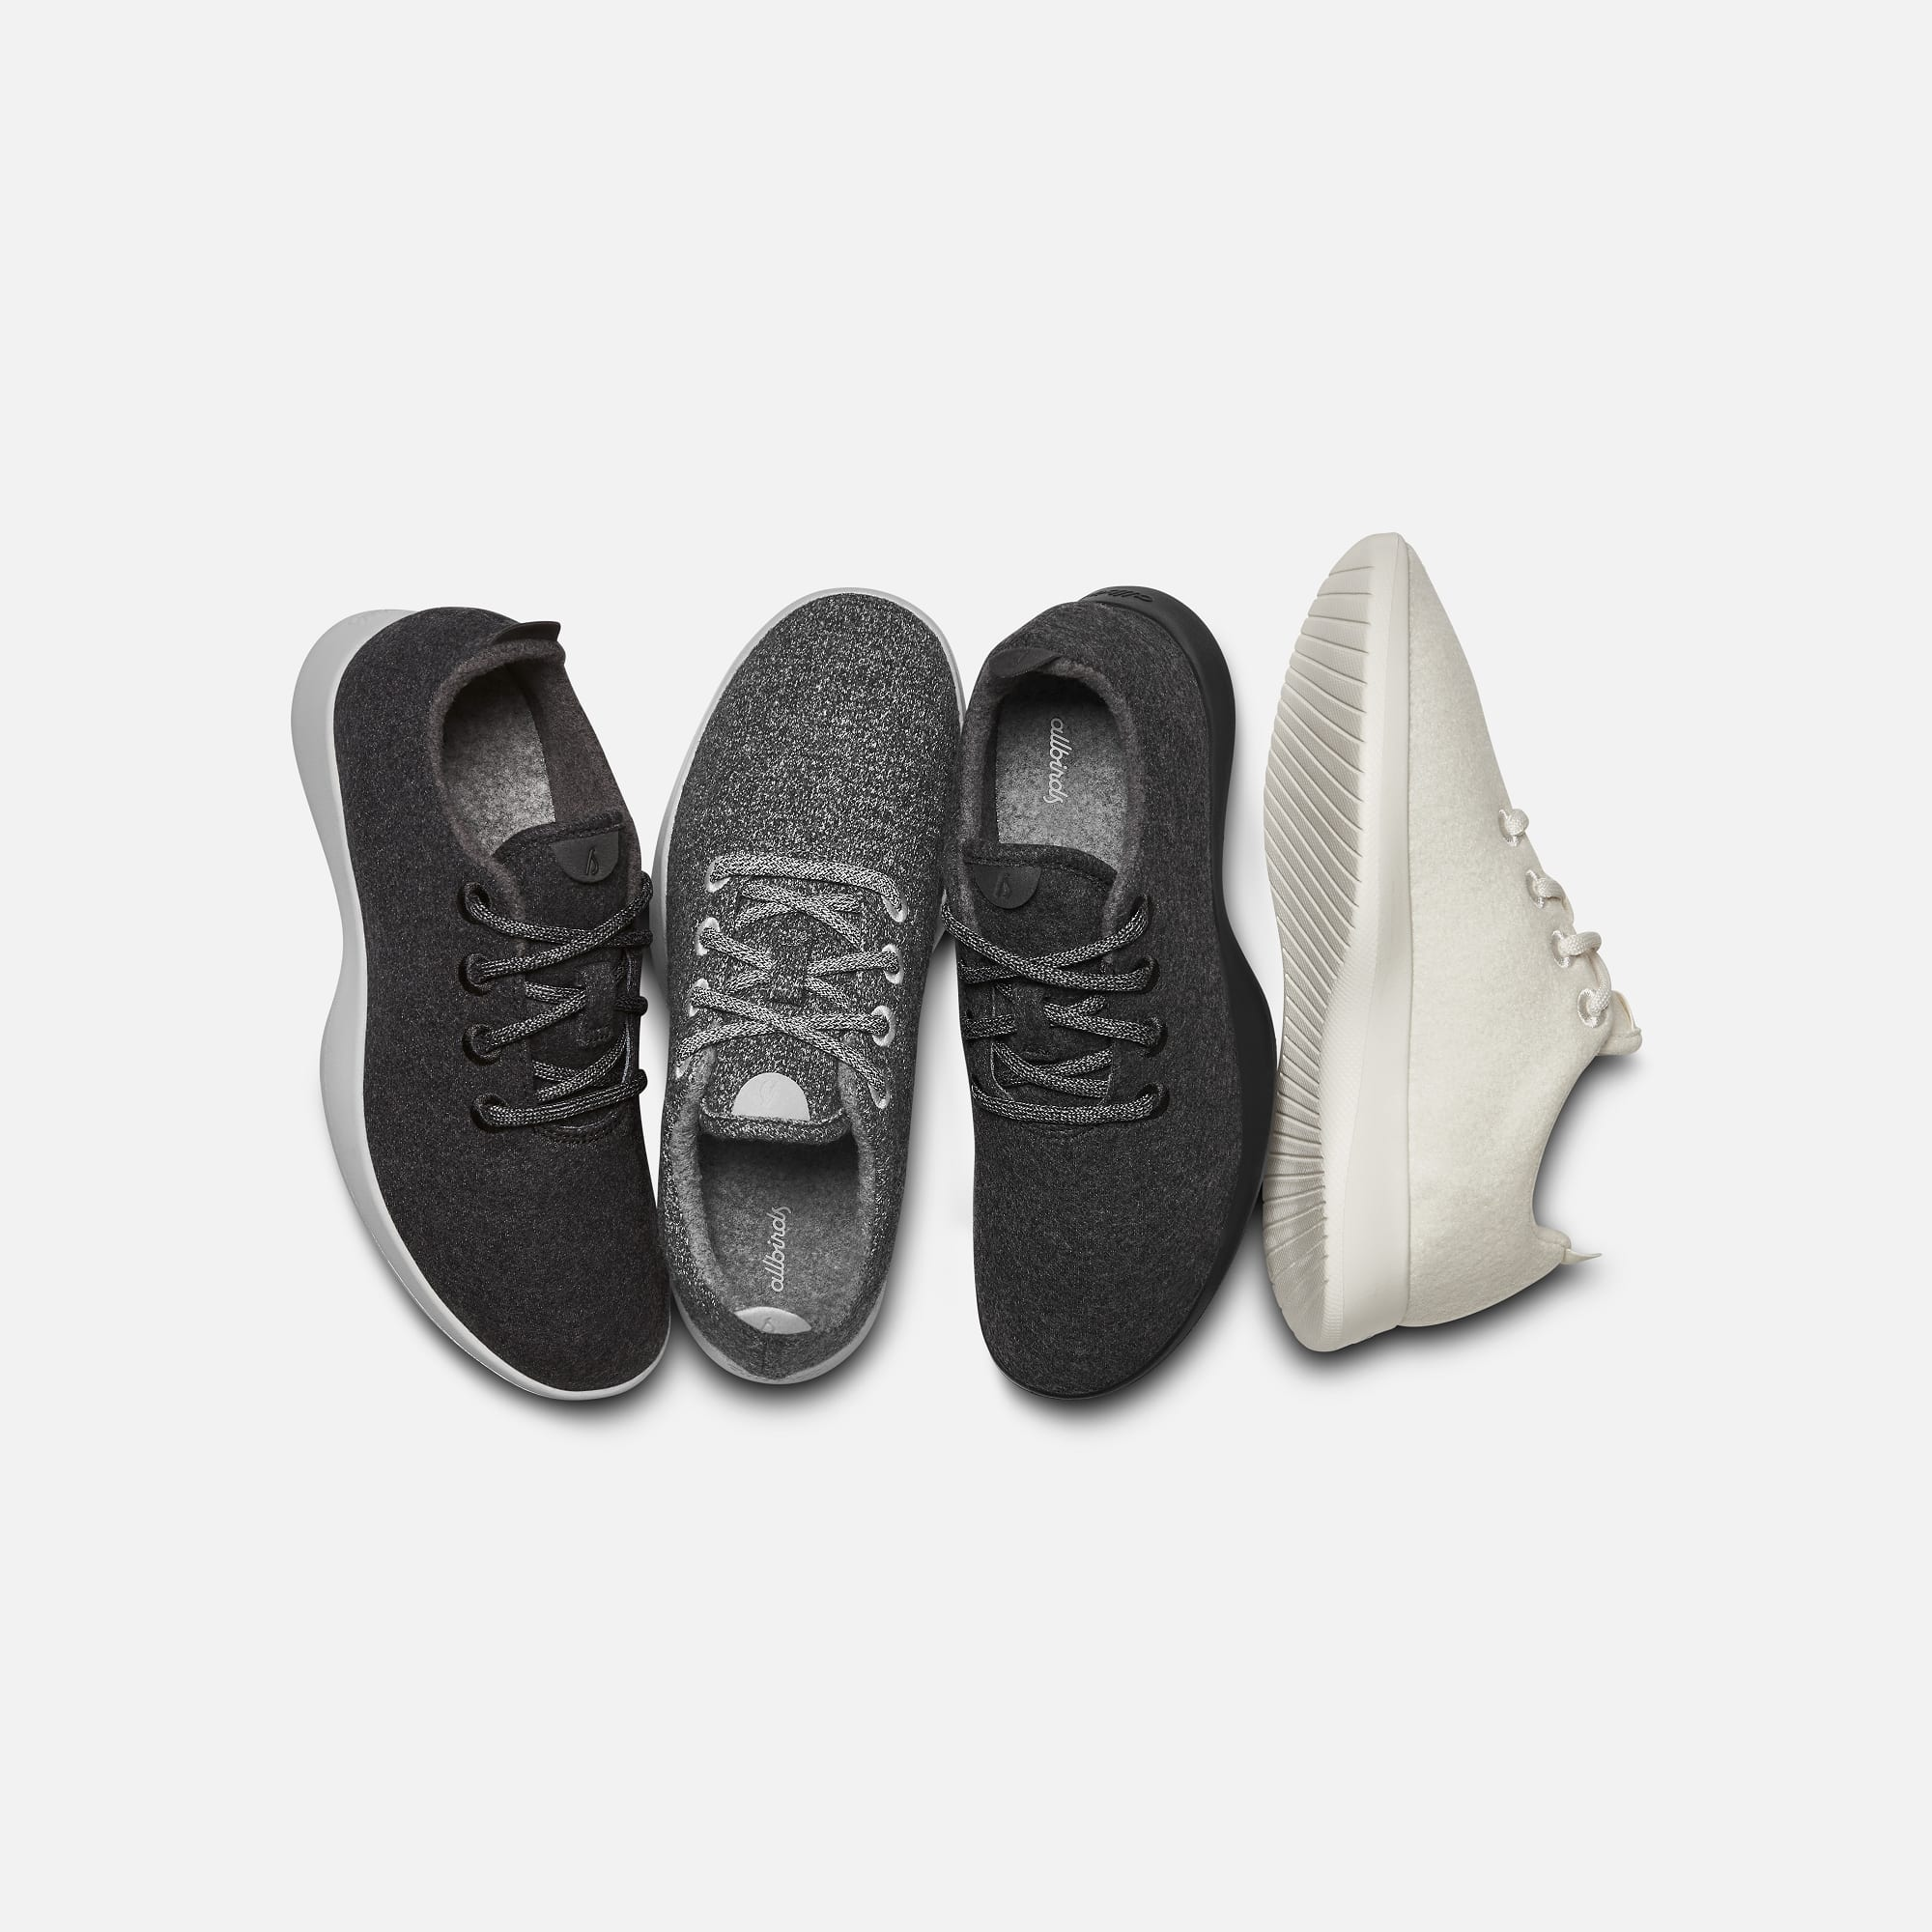 ed46e113db2554 Allbirds went from Silicon Valley staple to  1.4 billion shoe startup